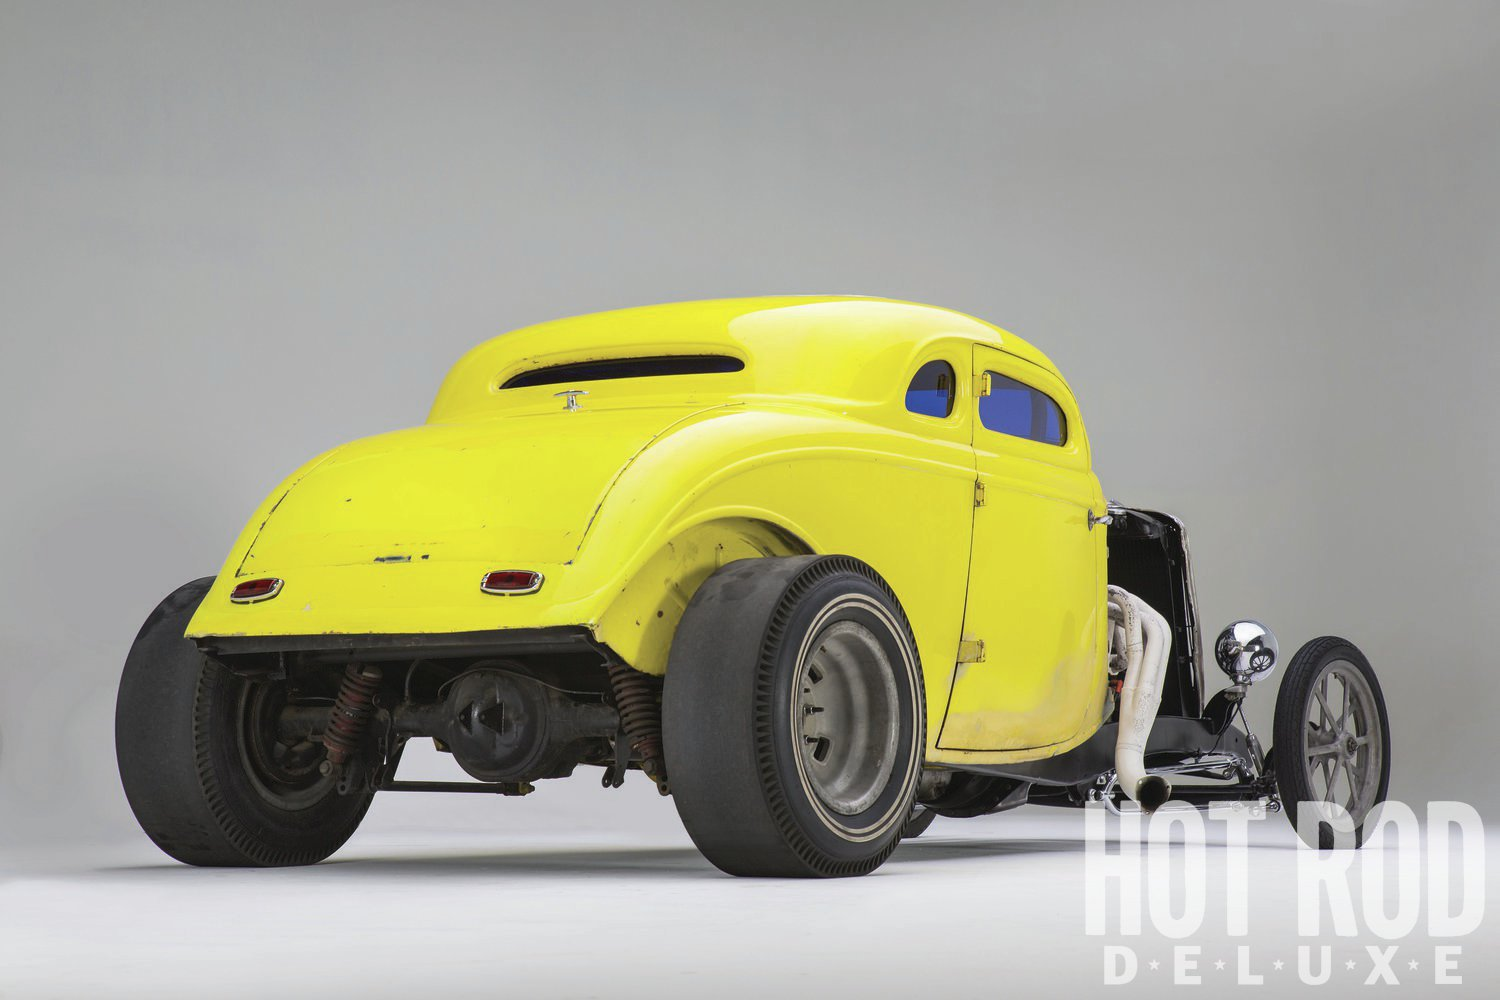 """An early four-bar setup hangs the 9-inch rearend, filled with 3.70 gears and a posi. The 15x9 mags out back are a set made by Romeo Palamides before he founded American Racing, says Gil. The slicks are original early Dragmasters that are """"maybe 50 years old,"""" he says. """"At high speeds they get weird because they're sort of out of balance."""""""